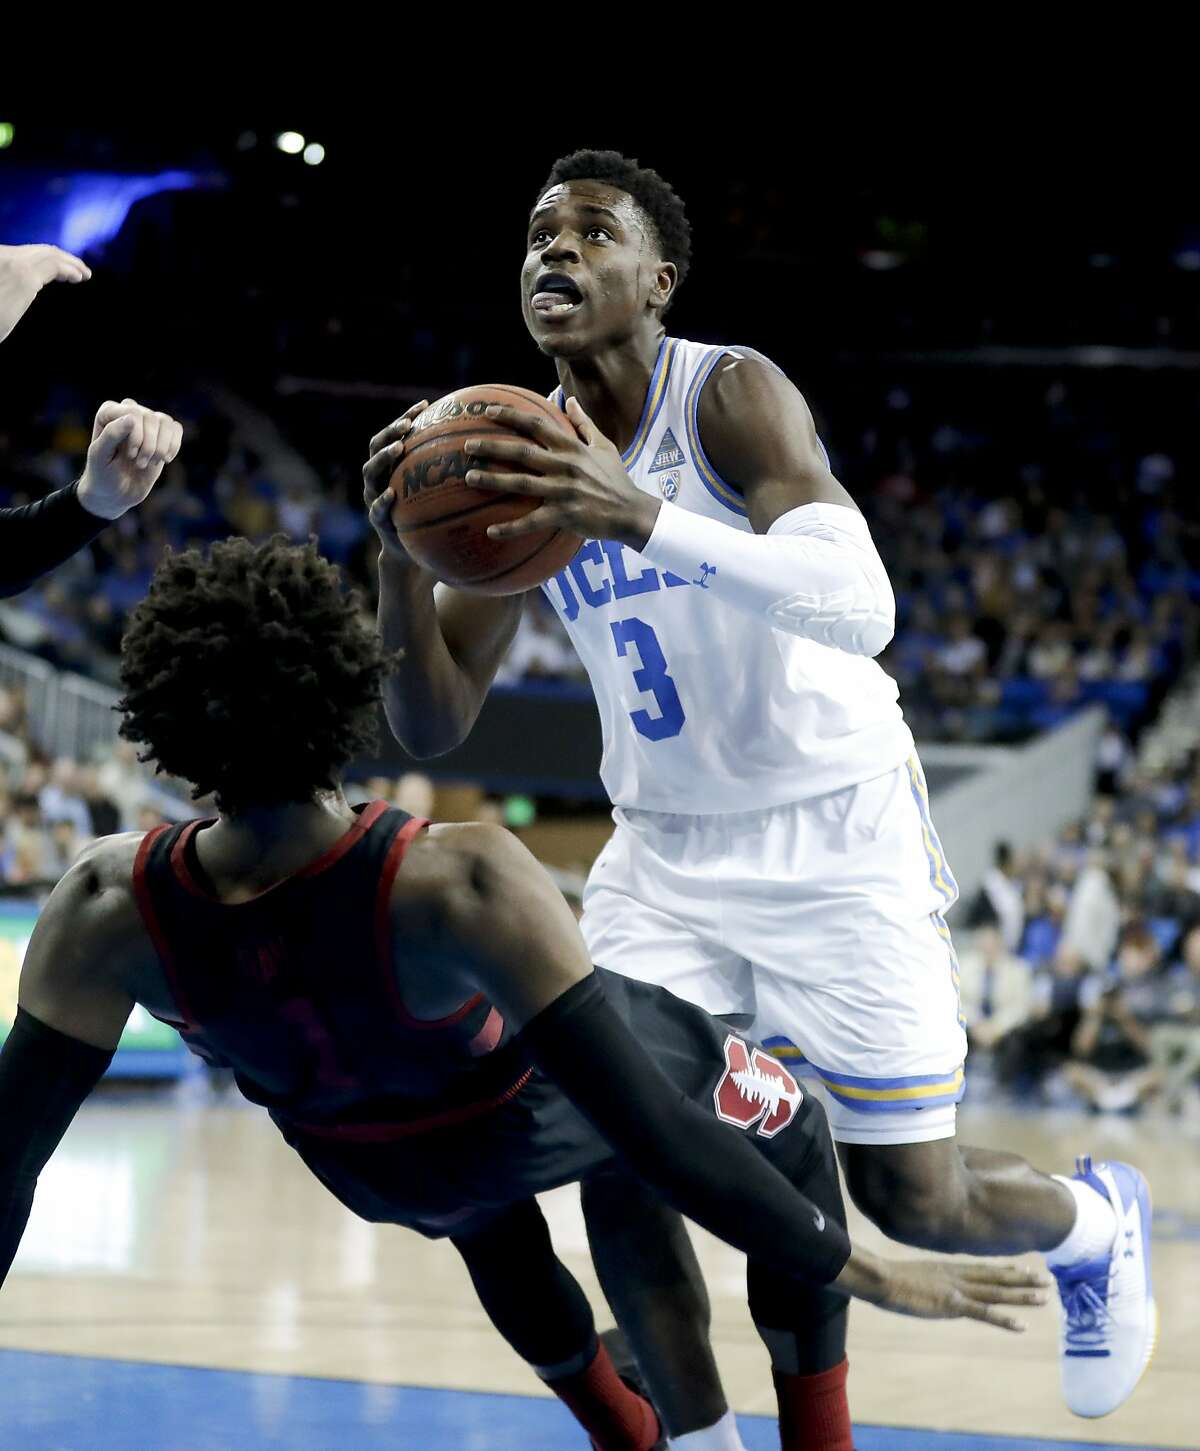 UCLA guard Aaron Holiday looks to shoot as Stanford guard Daejon Davis falls during the first half of an NCAA college basketball game in Los Angeles, Saturday, Jan. 27, 2018. (AP Photo/Chris Carlson)